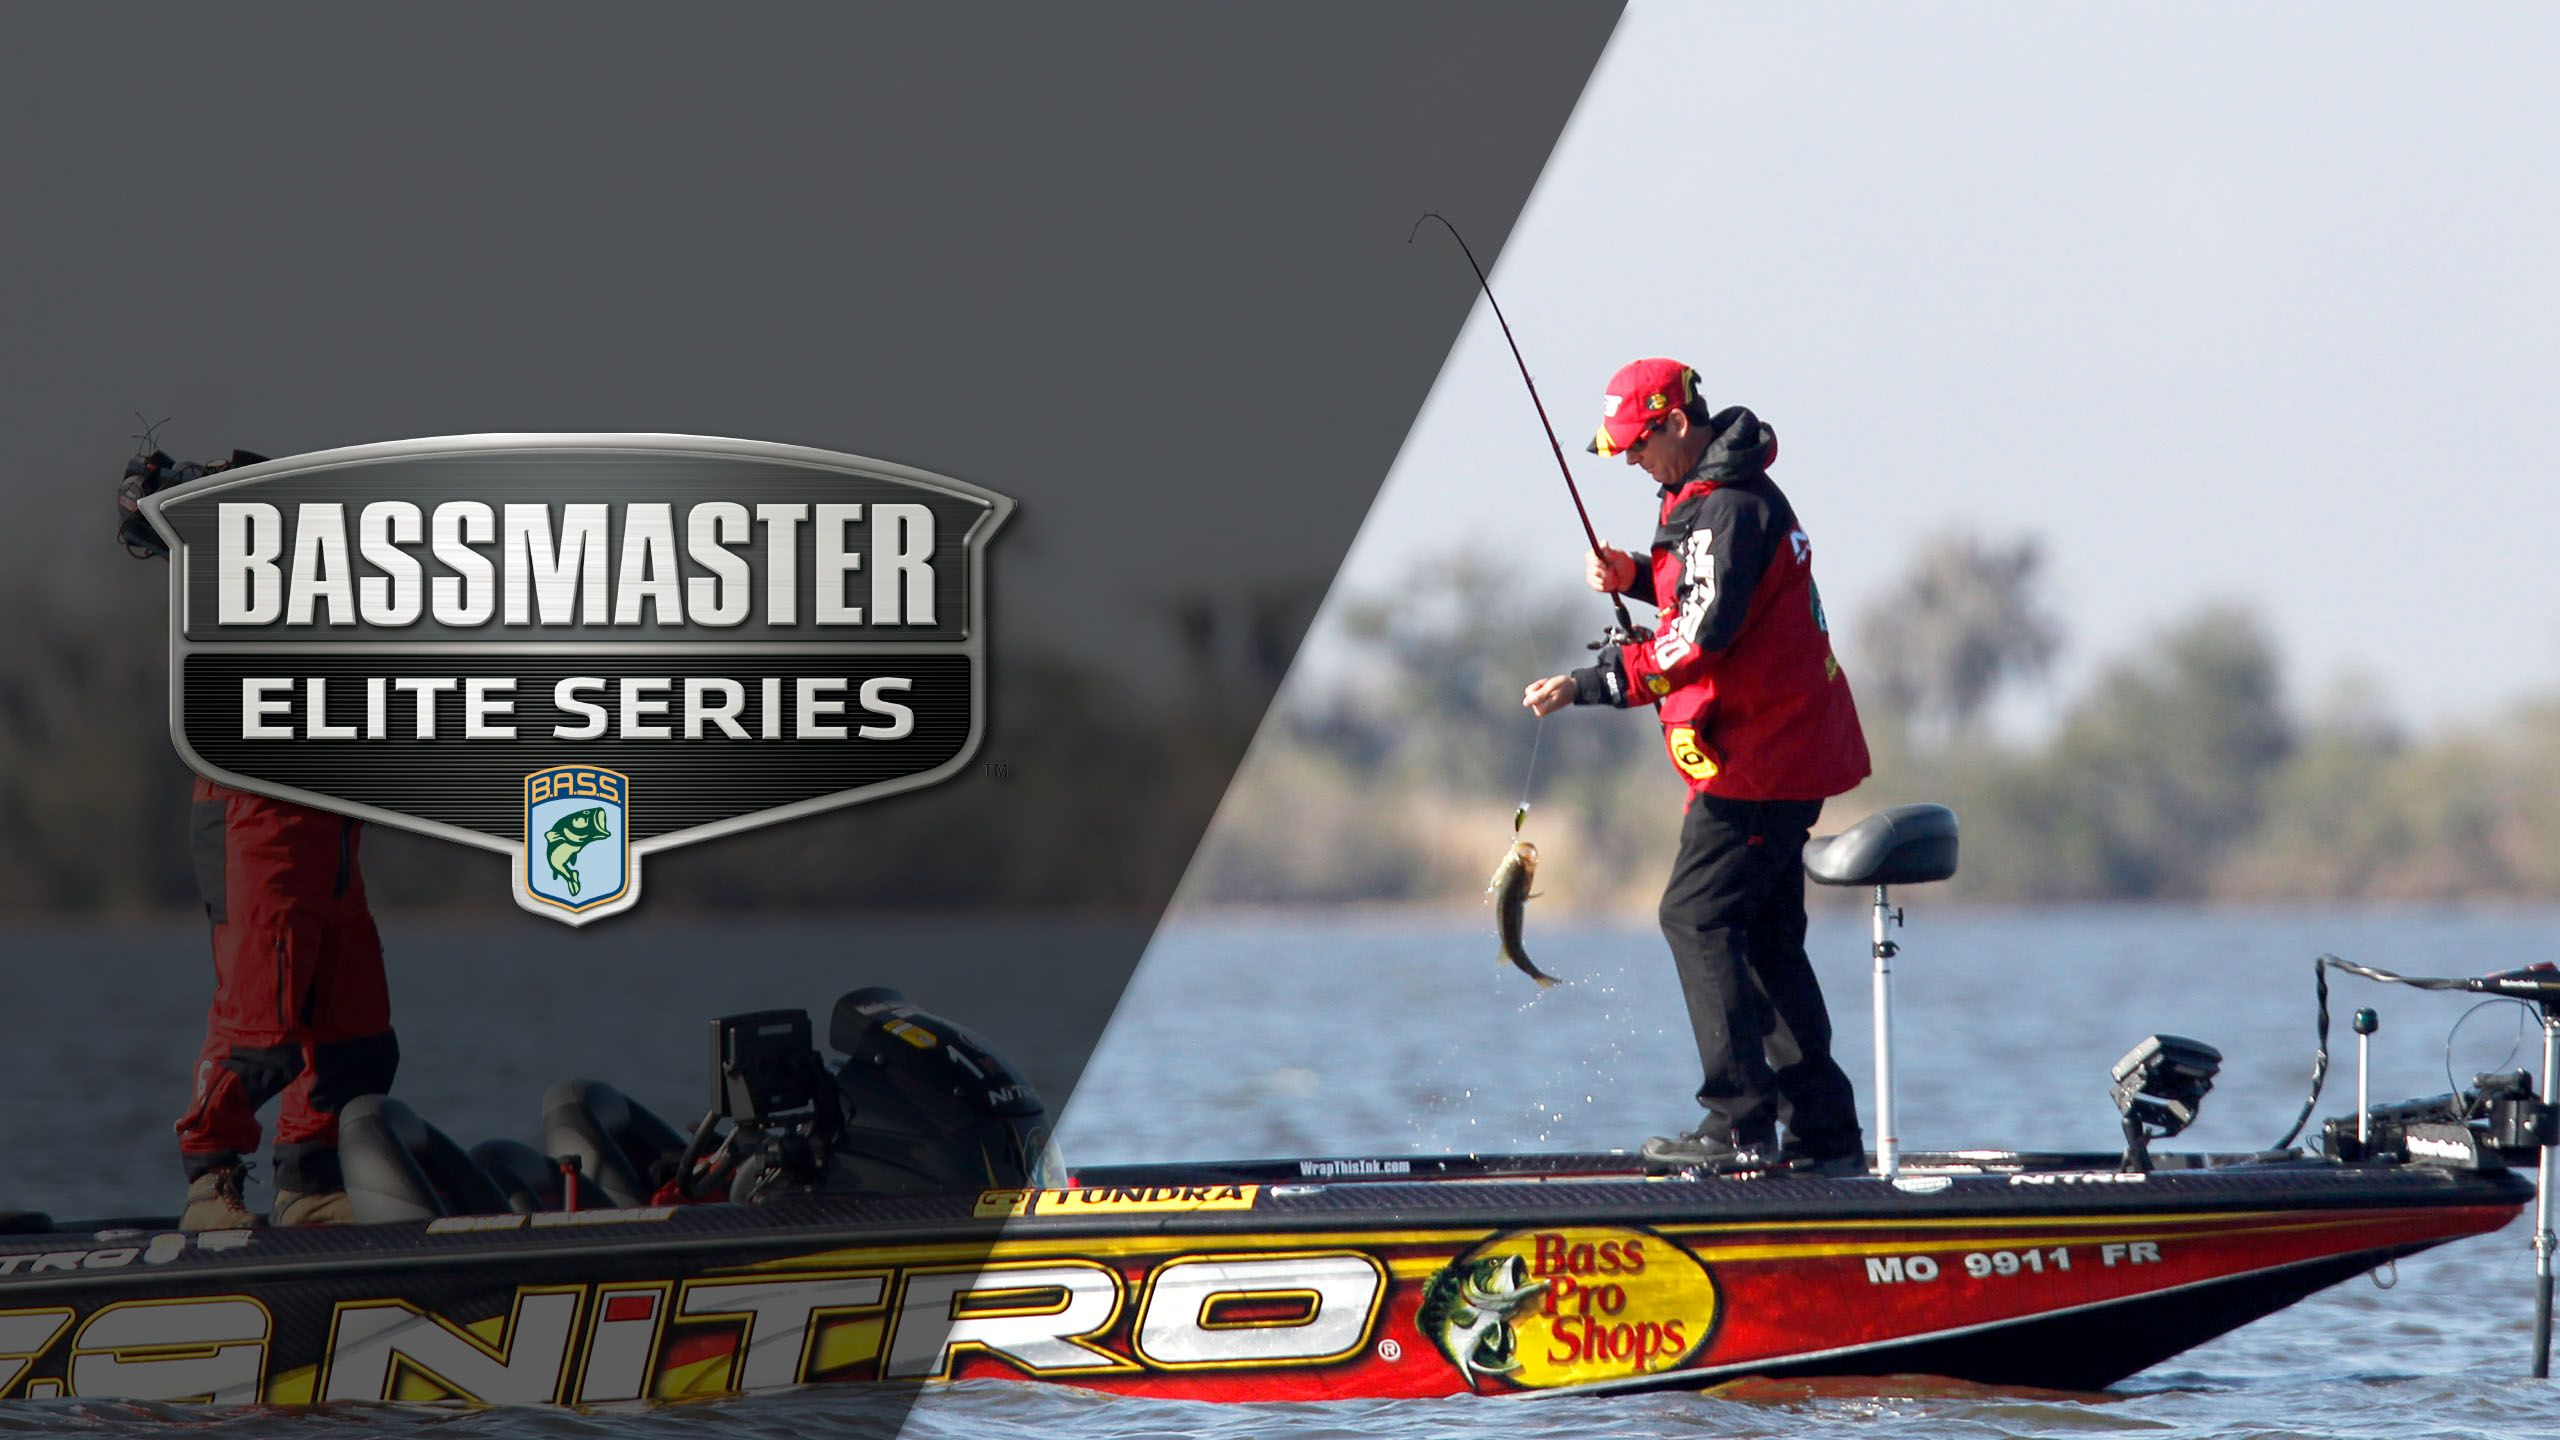 The Bassmaster Classic Bracket